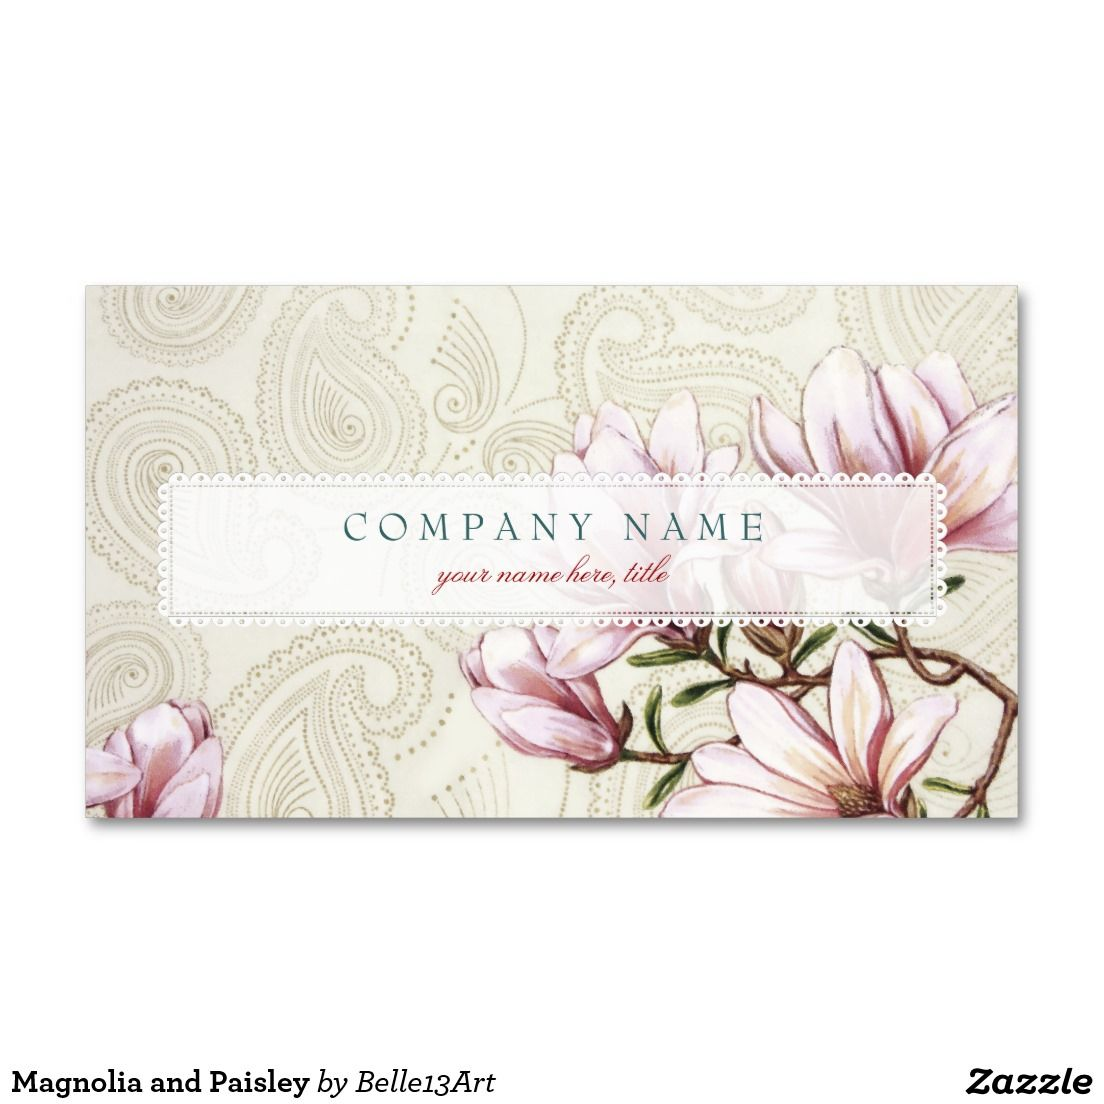 Magnolia and paisley business card business cards magnolia and magnolia and paisley business card magicingreecefo Images